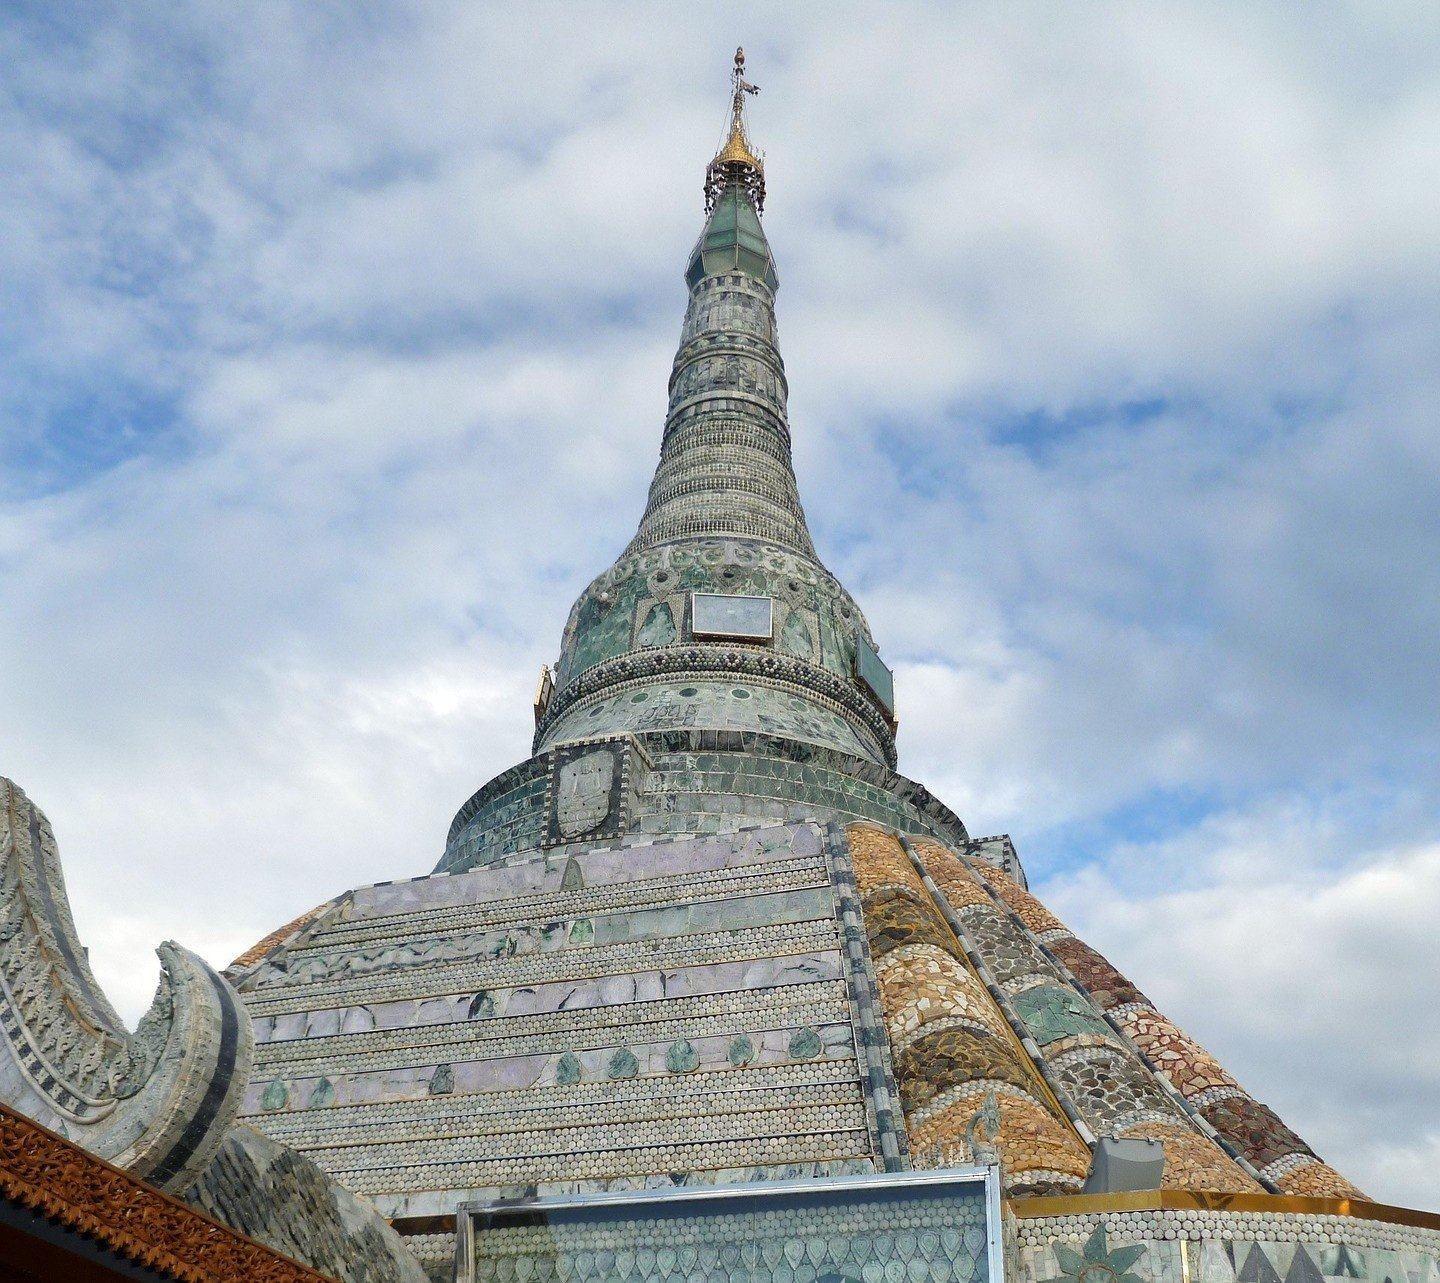 Kyauksein Pagoda in Mandalay